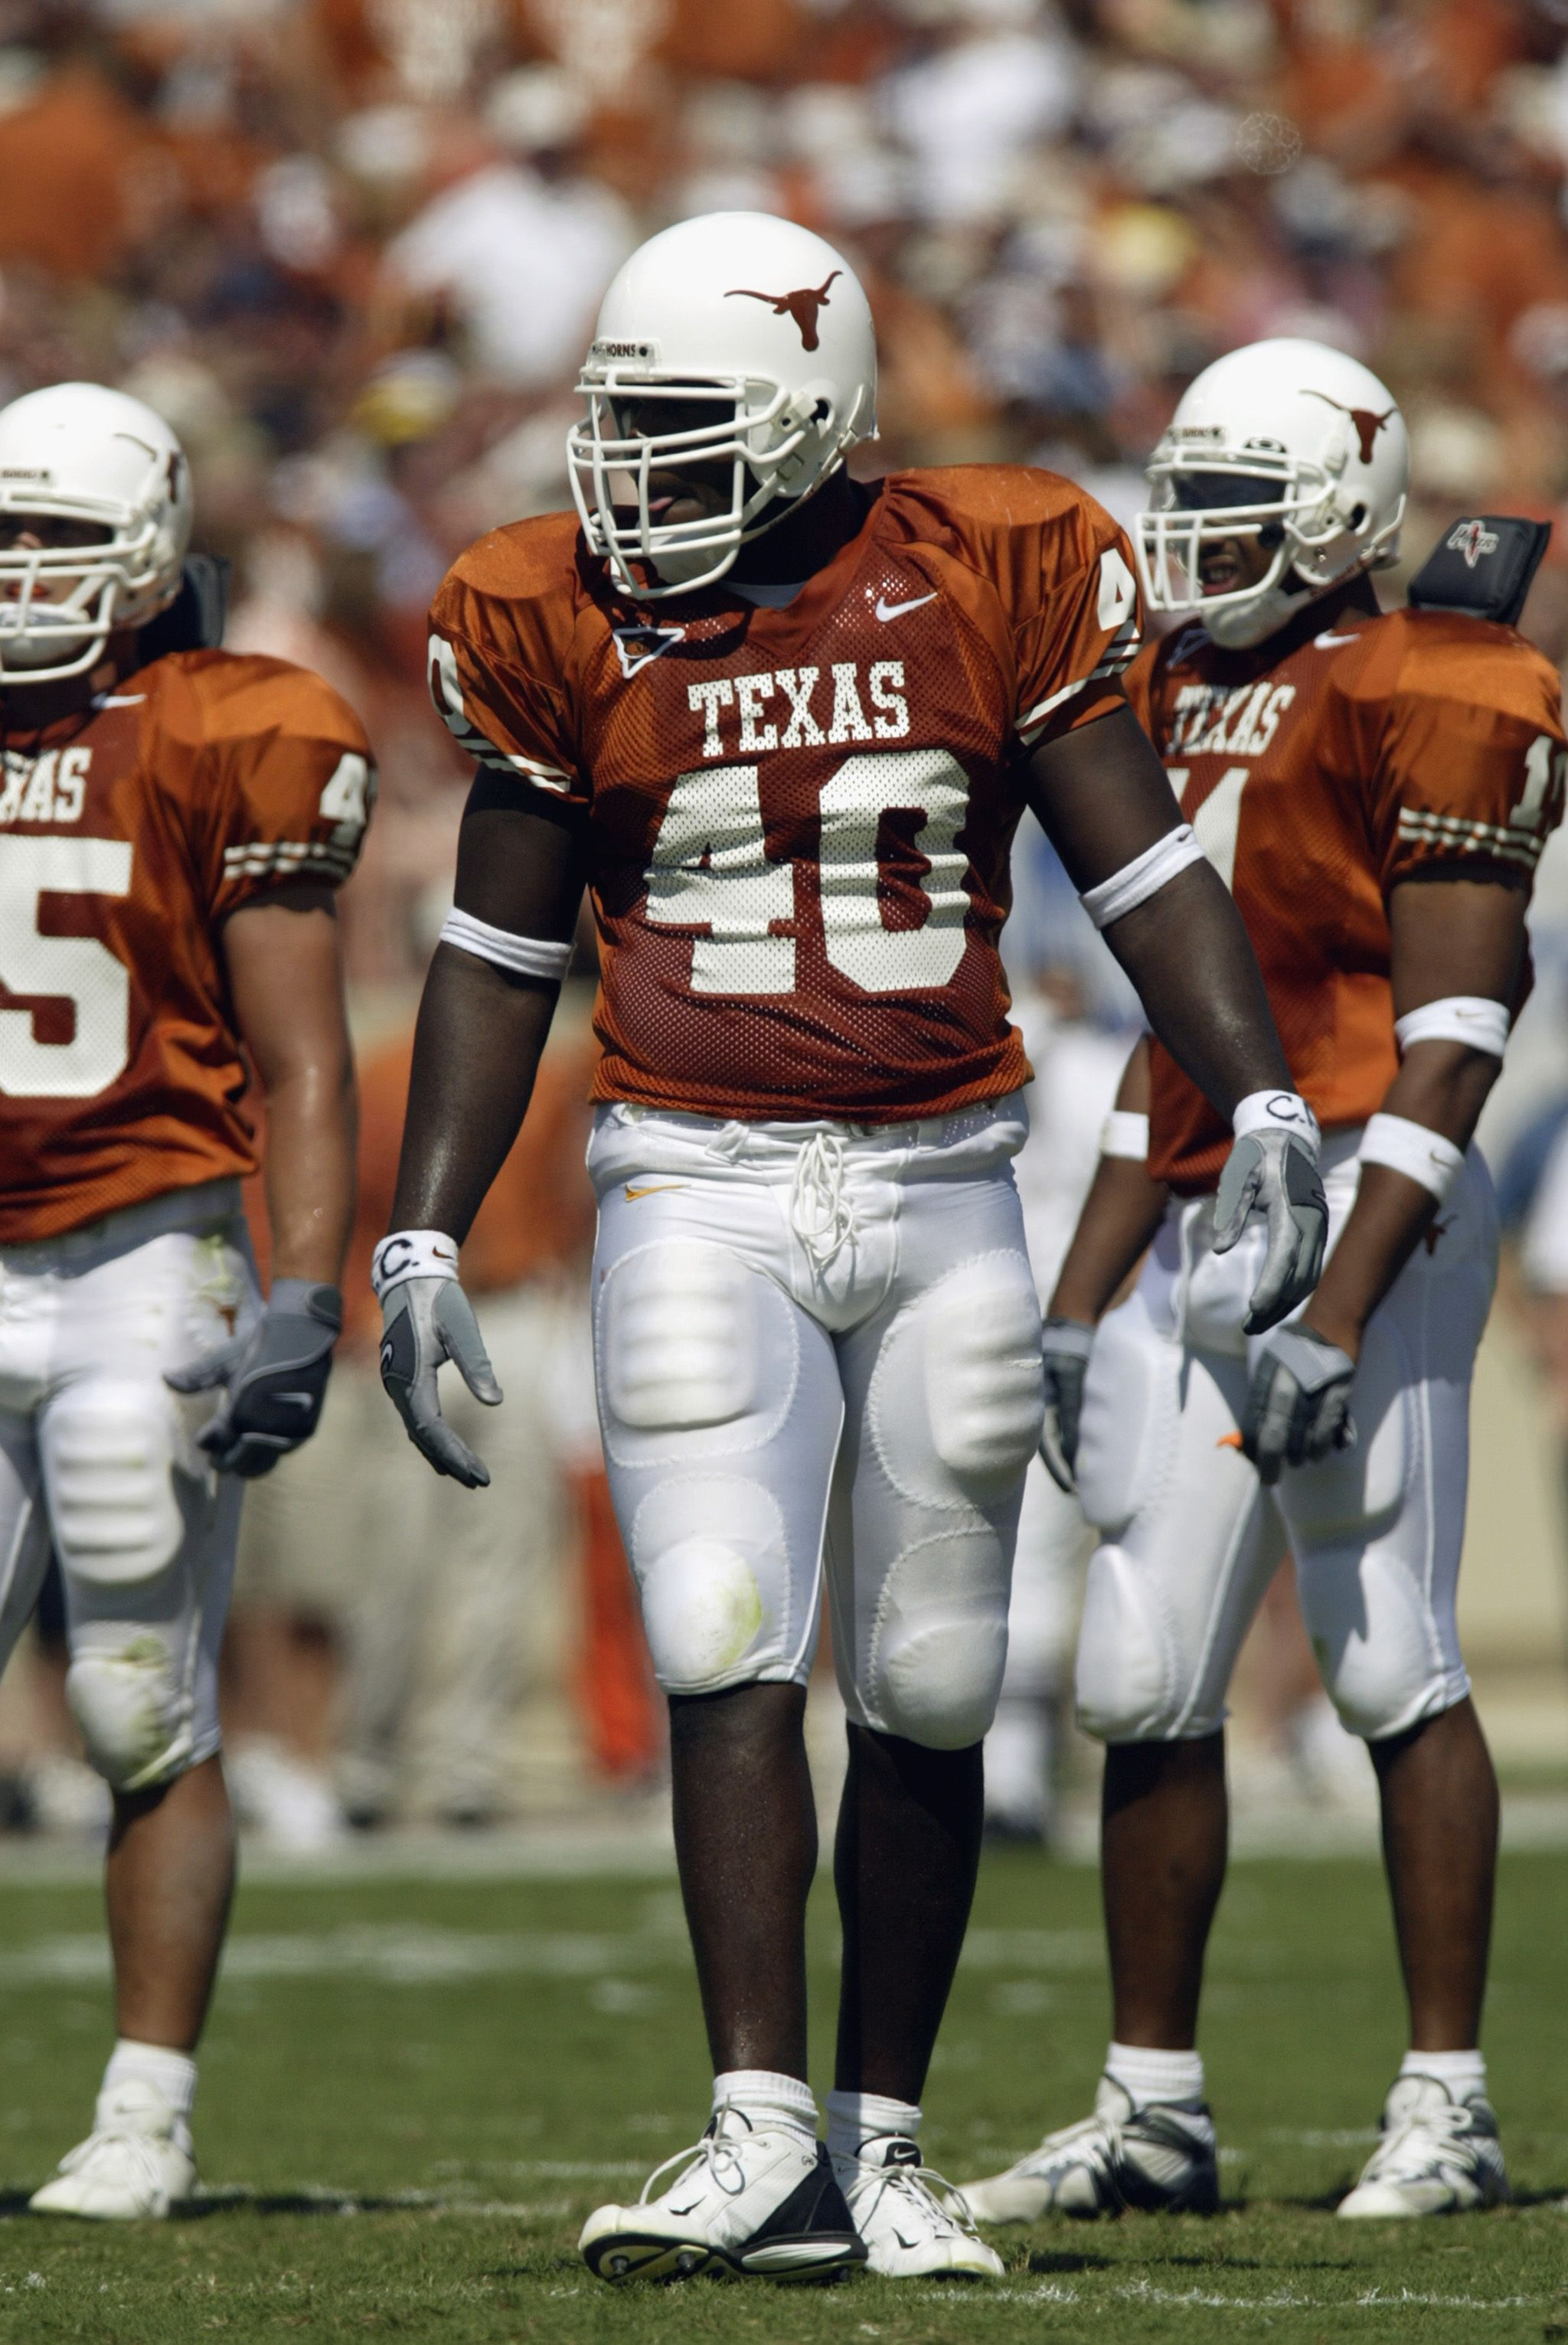 College Football The All Time 50 Greatest Texas Longhorns Texas Longhorns Football Football Longhorns Football